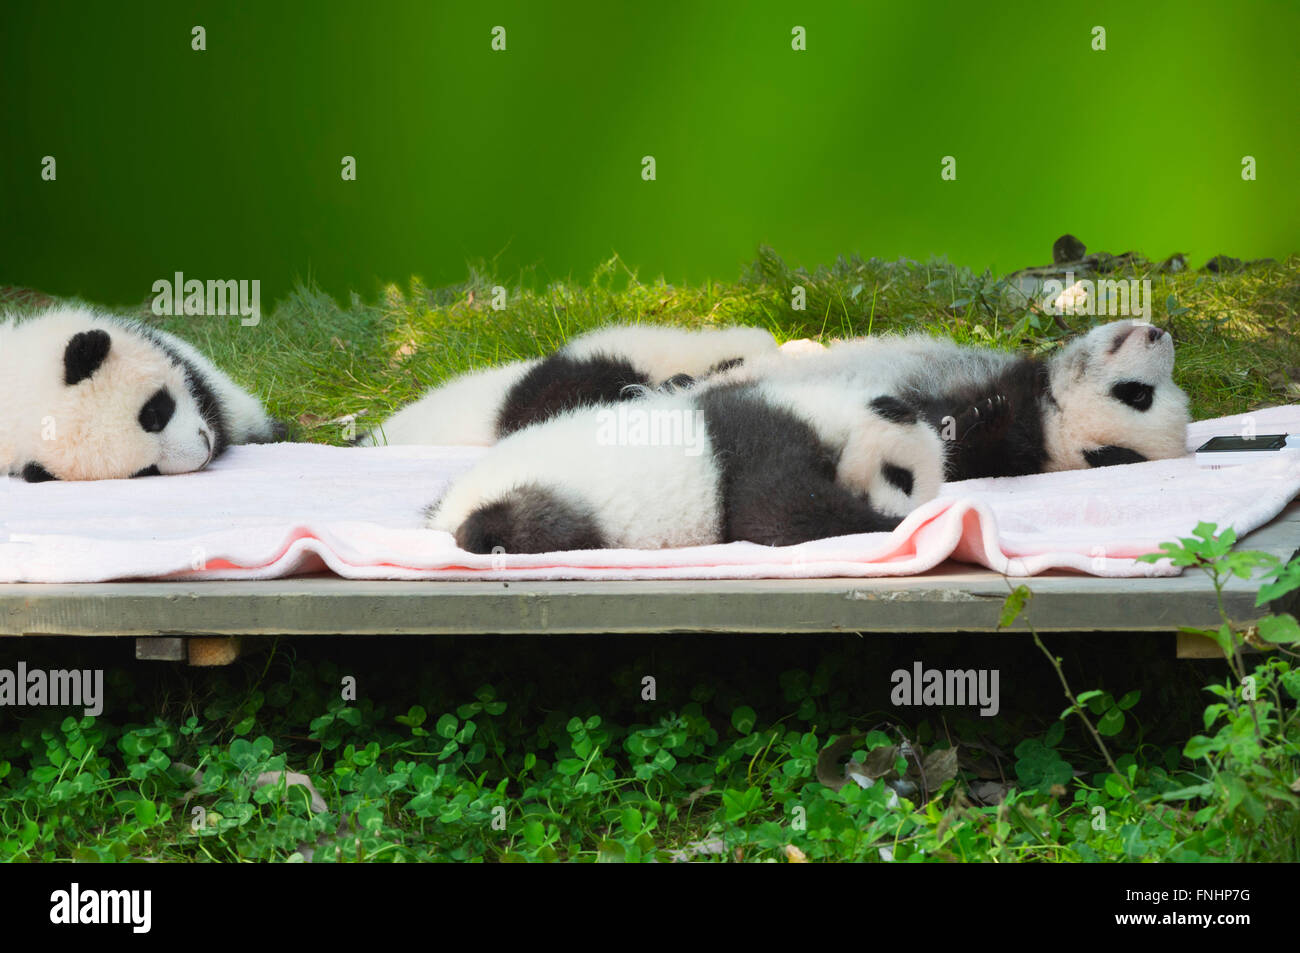 Baby Pandas (Ailuropoda melanoleuca) in the Chengdu Giant Panda Breeding Center China Conservation and Research Stock Photo